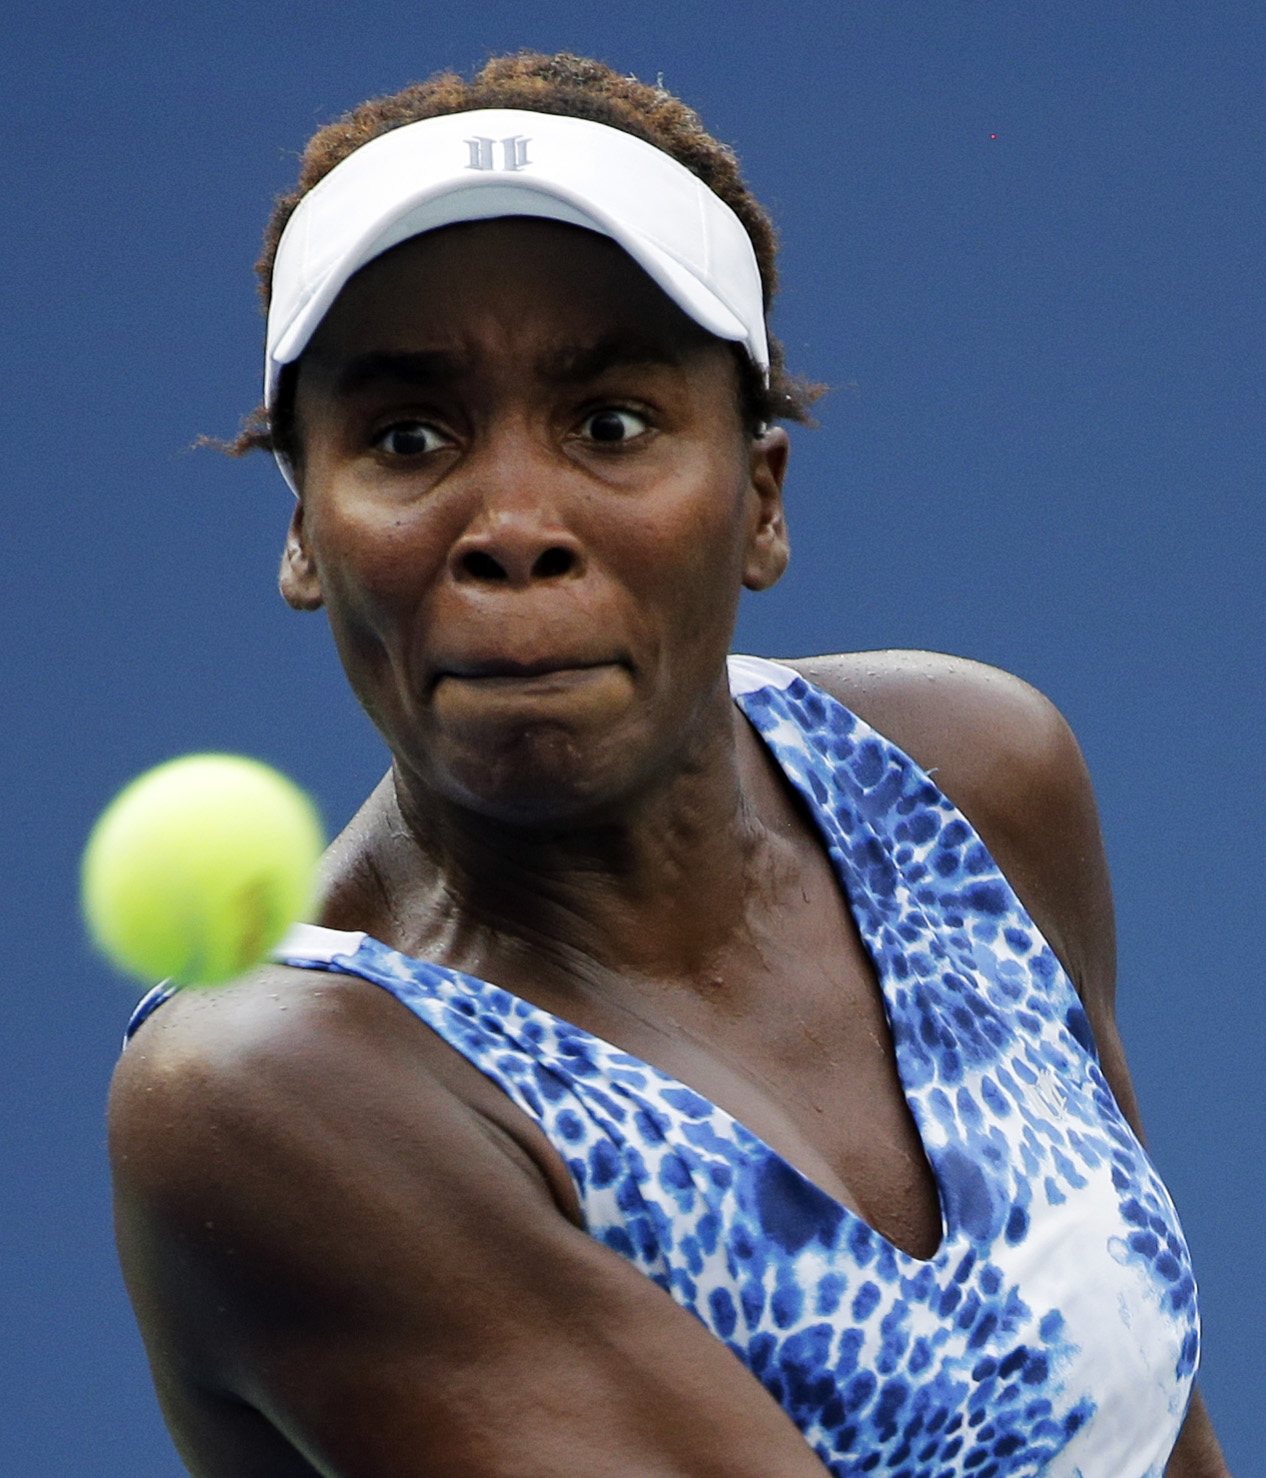 Venus Williams, of the United States, returns a shot against Monica Puig, of Puerto Rico, during the first round of the U.S. Open tennis tournament, Monday, Aug. 31, 2015, in New York. (AP Photo/Matt Rourke)